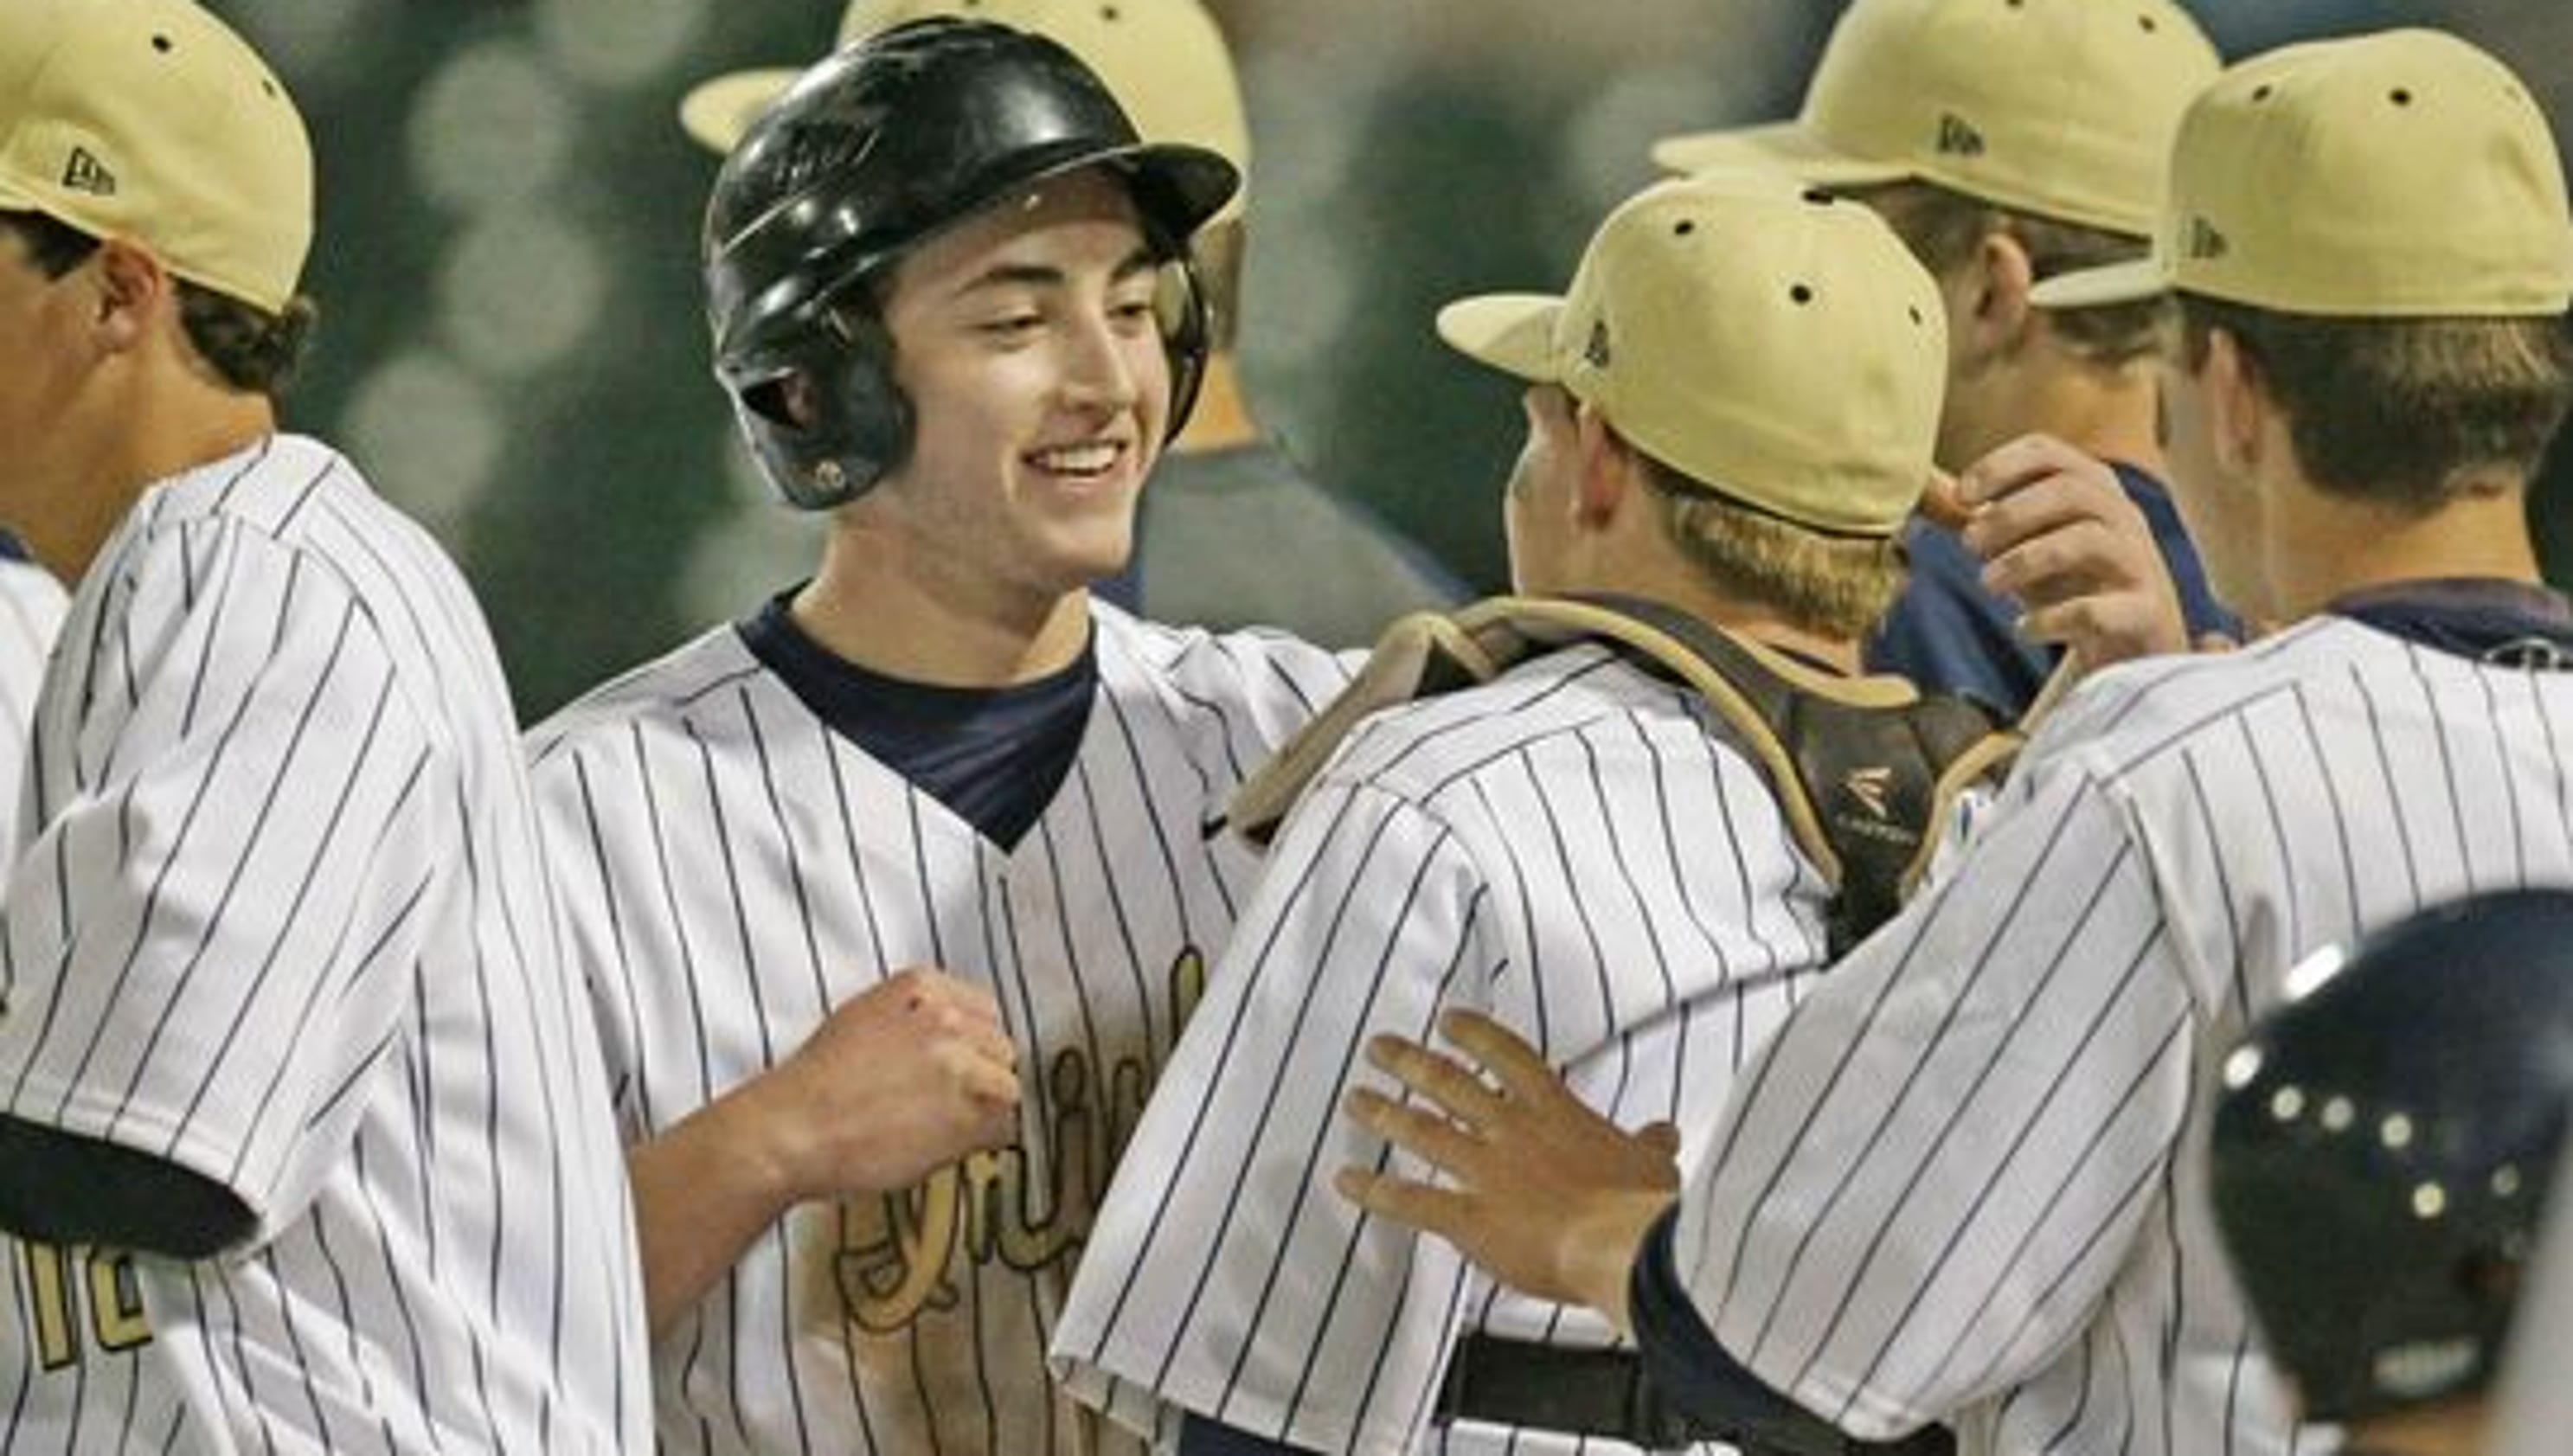 Cathedral s Jared Poland leads baseball All City team